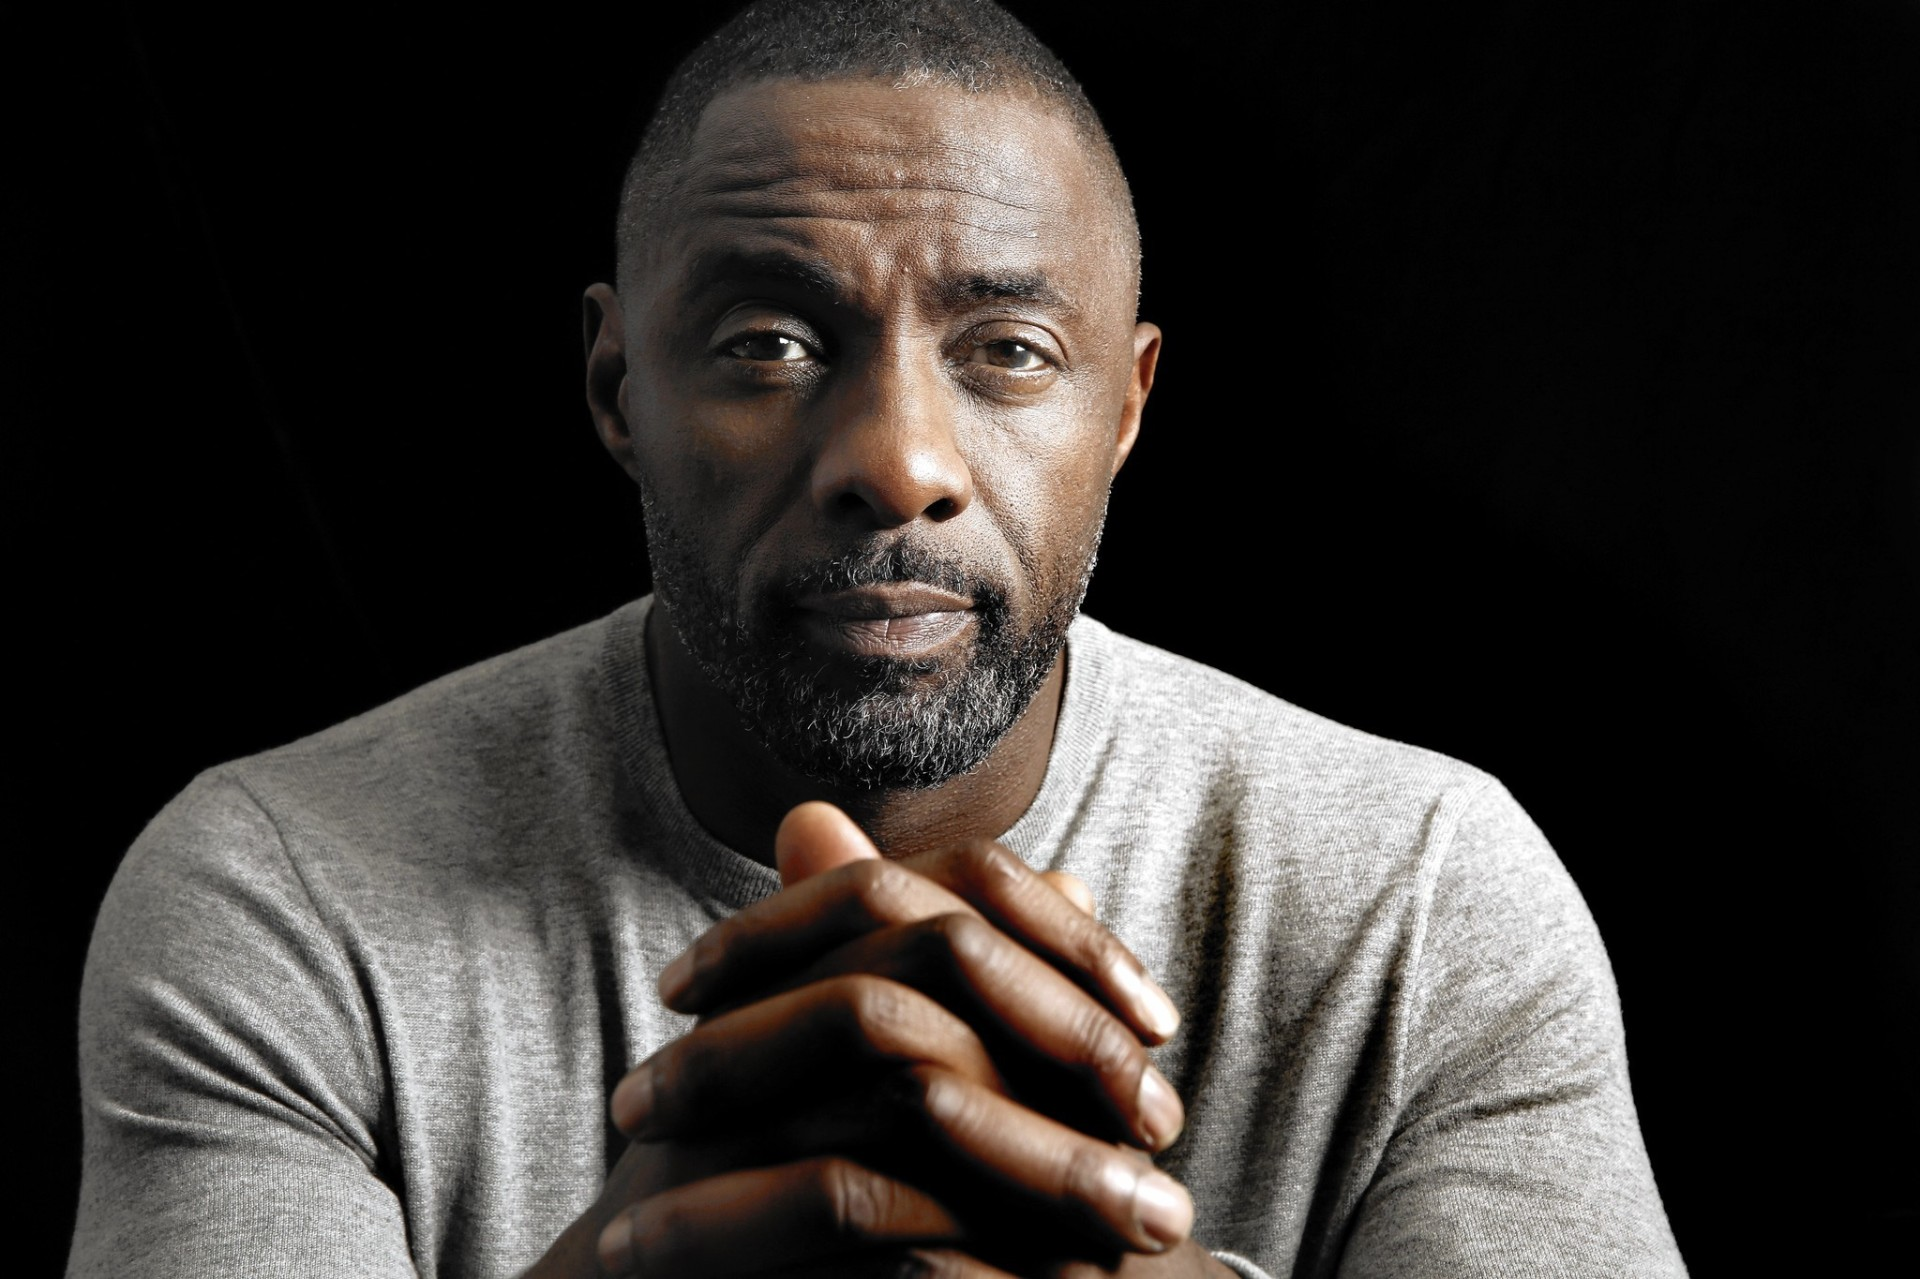 la-et-st-idris-elba-luther-20151217